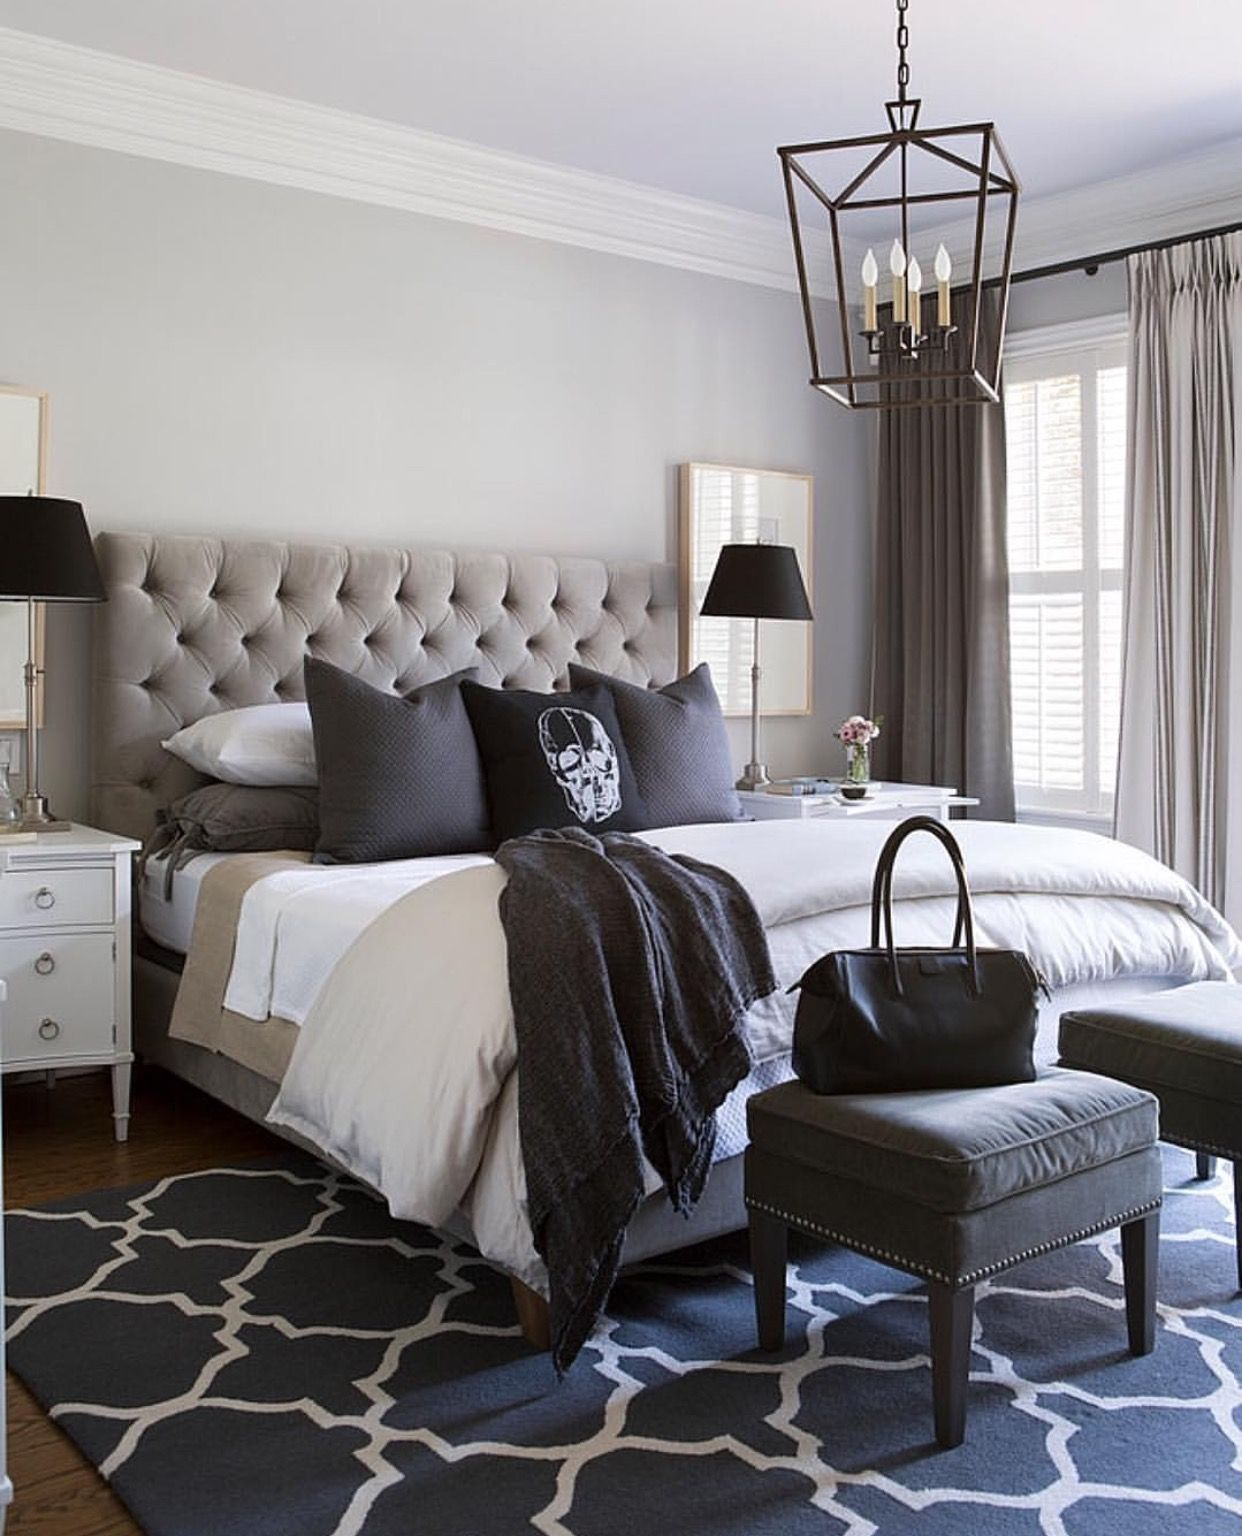 pin by heather fitzgerald on bedrooms pinterest bedrooms master